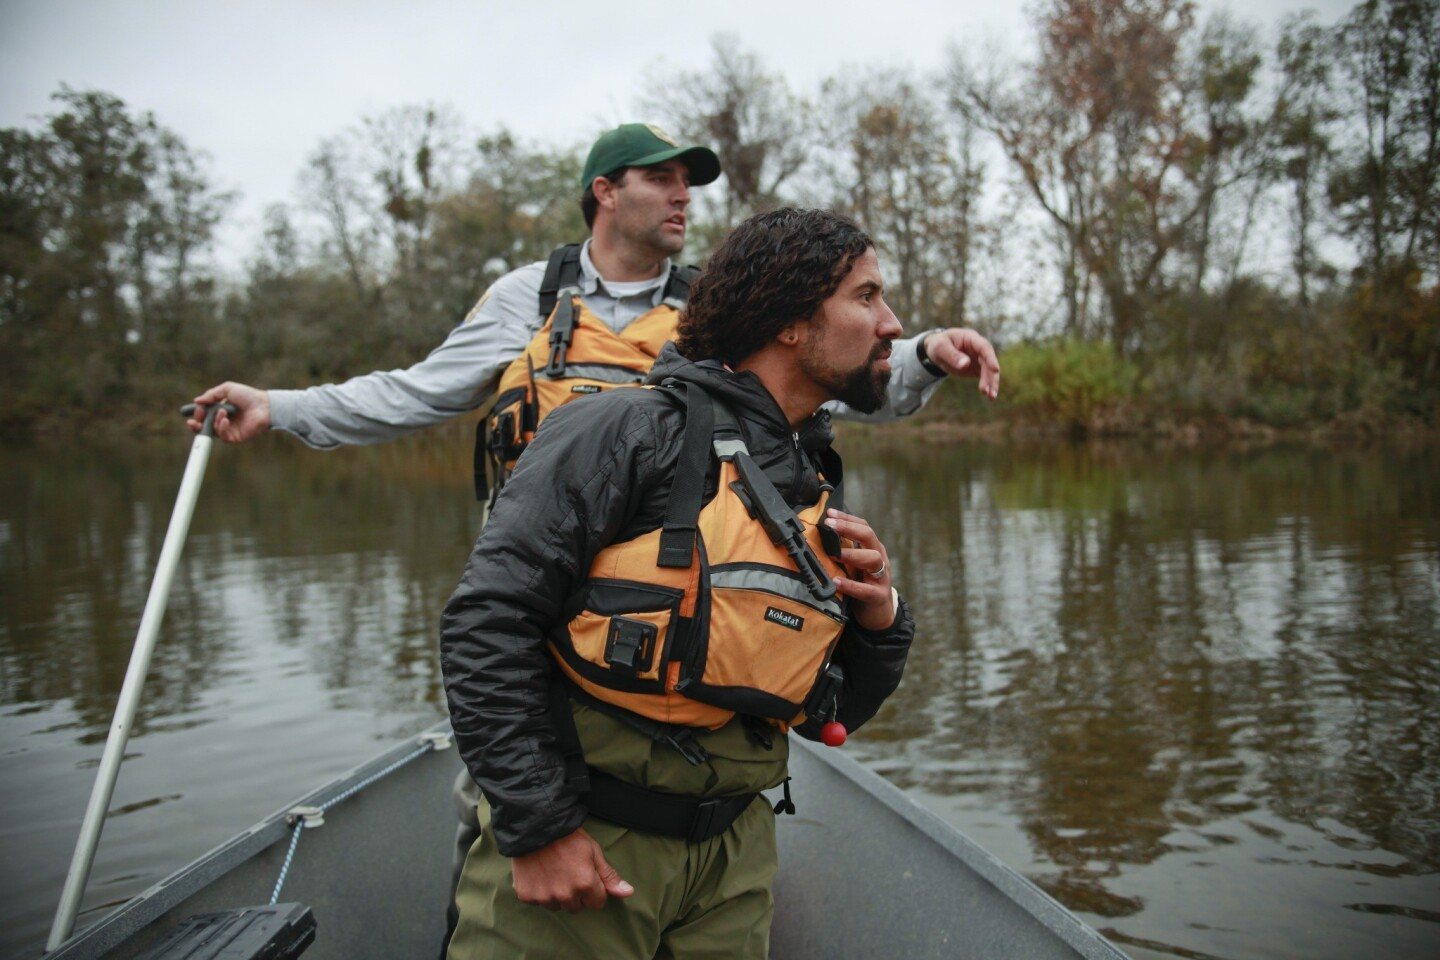 Rene Henery, California science director of Trout Unlimited (front) and Matt Bigelow, an environmental scientist with the California Department of Fish and Wildlife, spot a wild spawning chinook salmon in an upper portion of the San Joaquin River that has been devoid of salmon for more than 60 years.